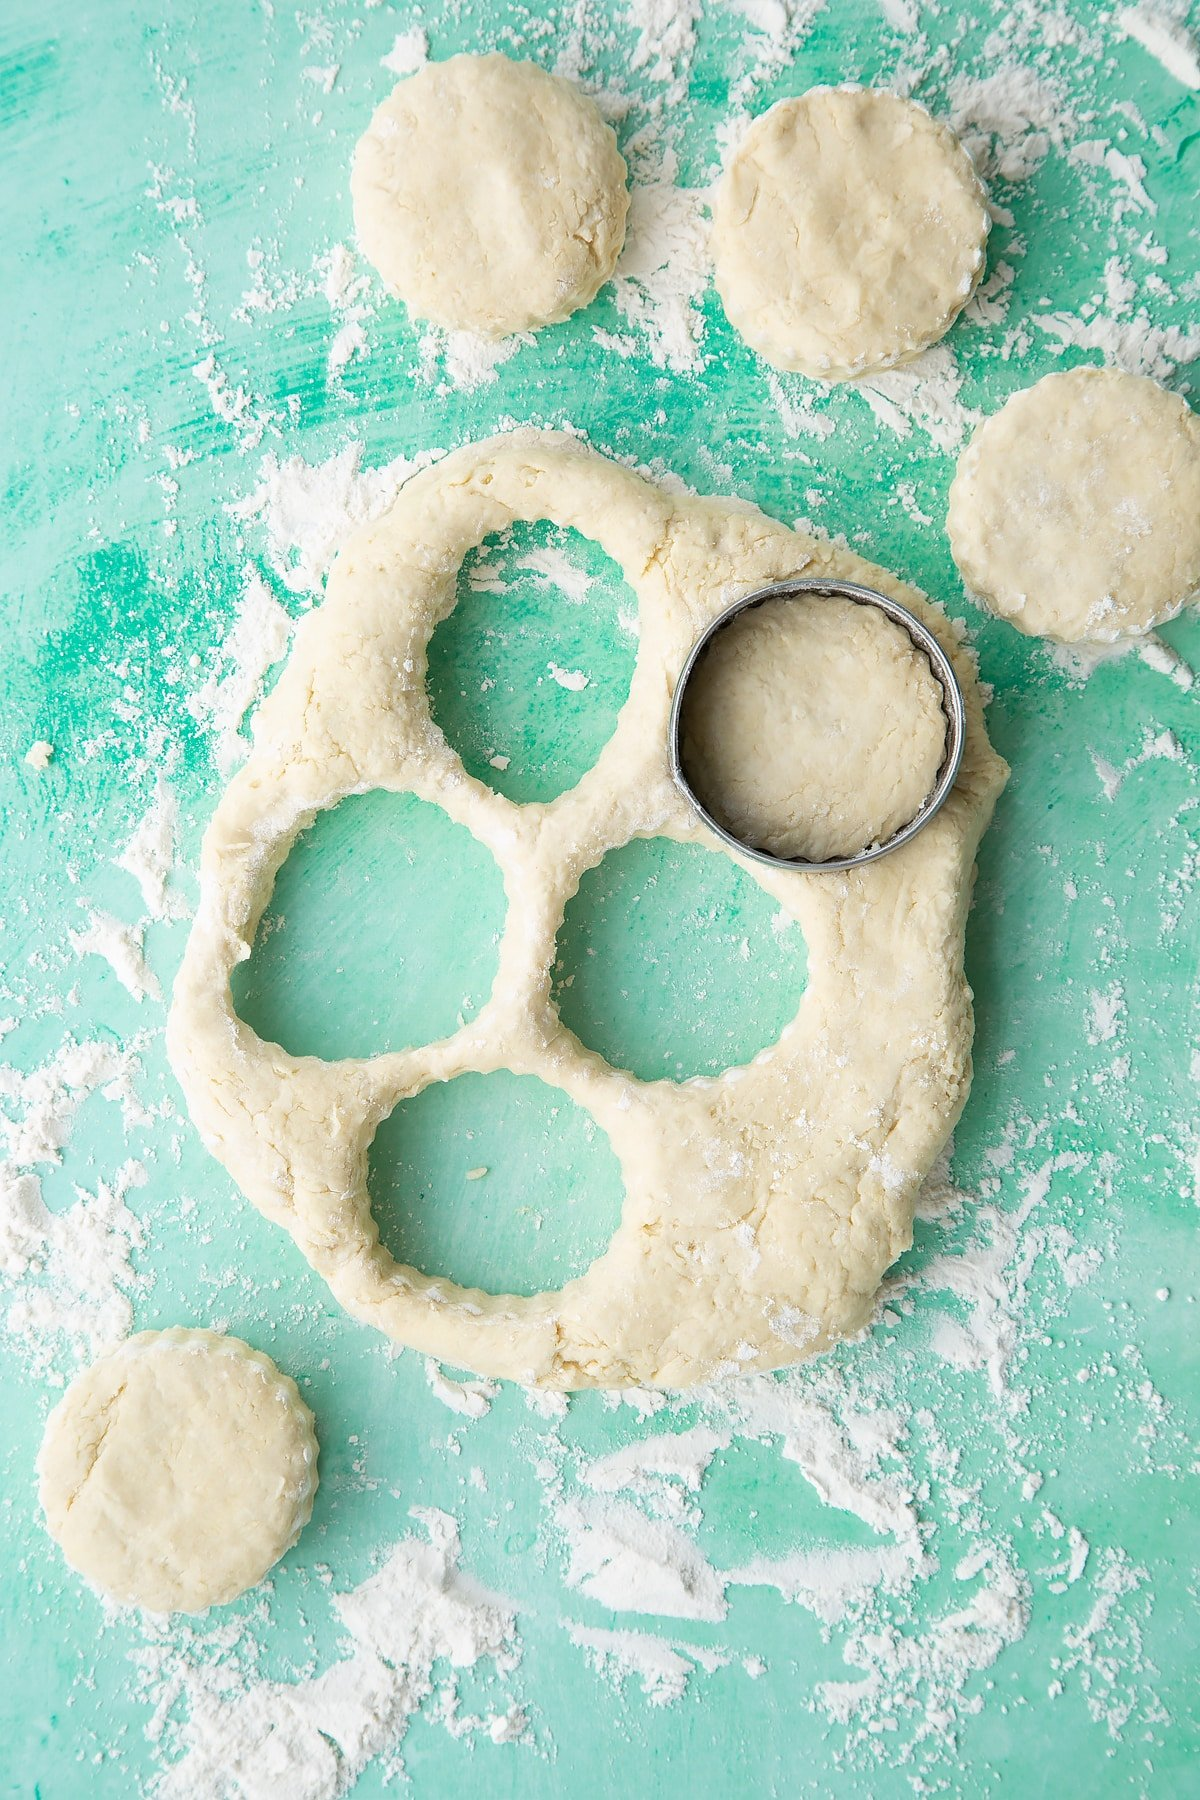 Dairy free scone dough pressed and cut into rounds on a floured surface.